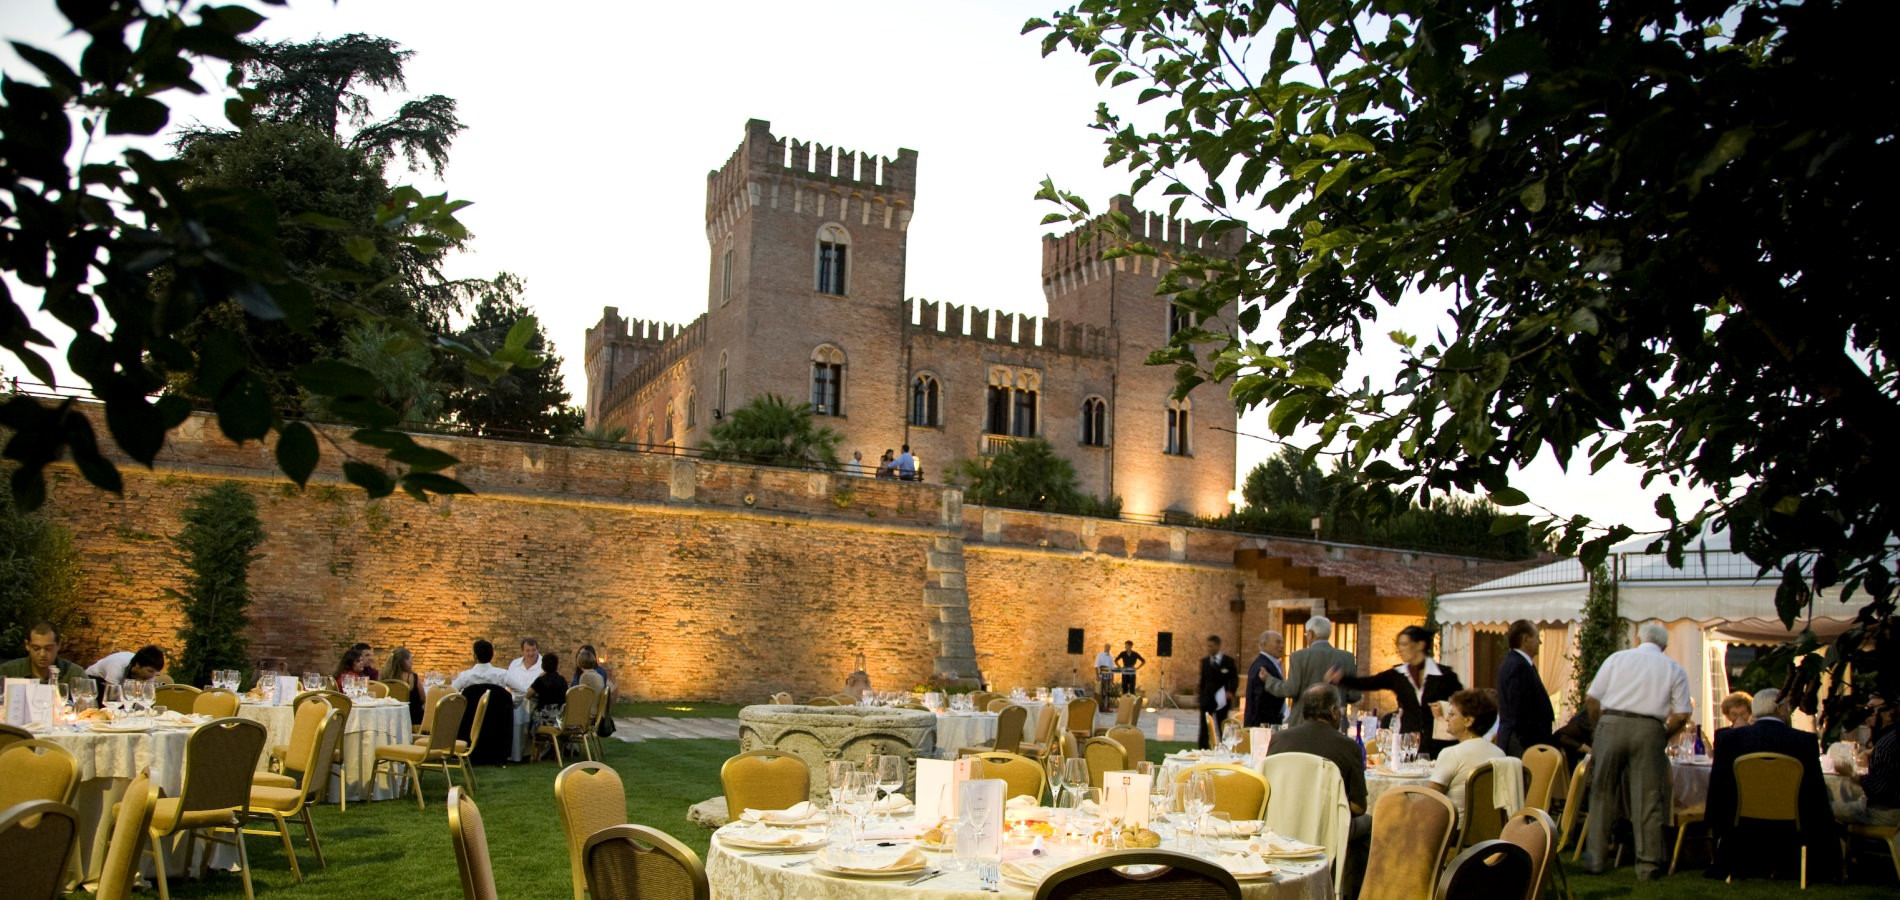 Castle Wedding Verona Italy Wedding Locations